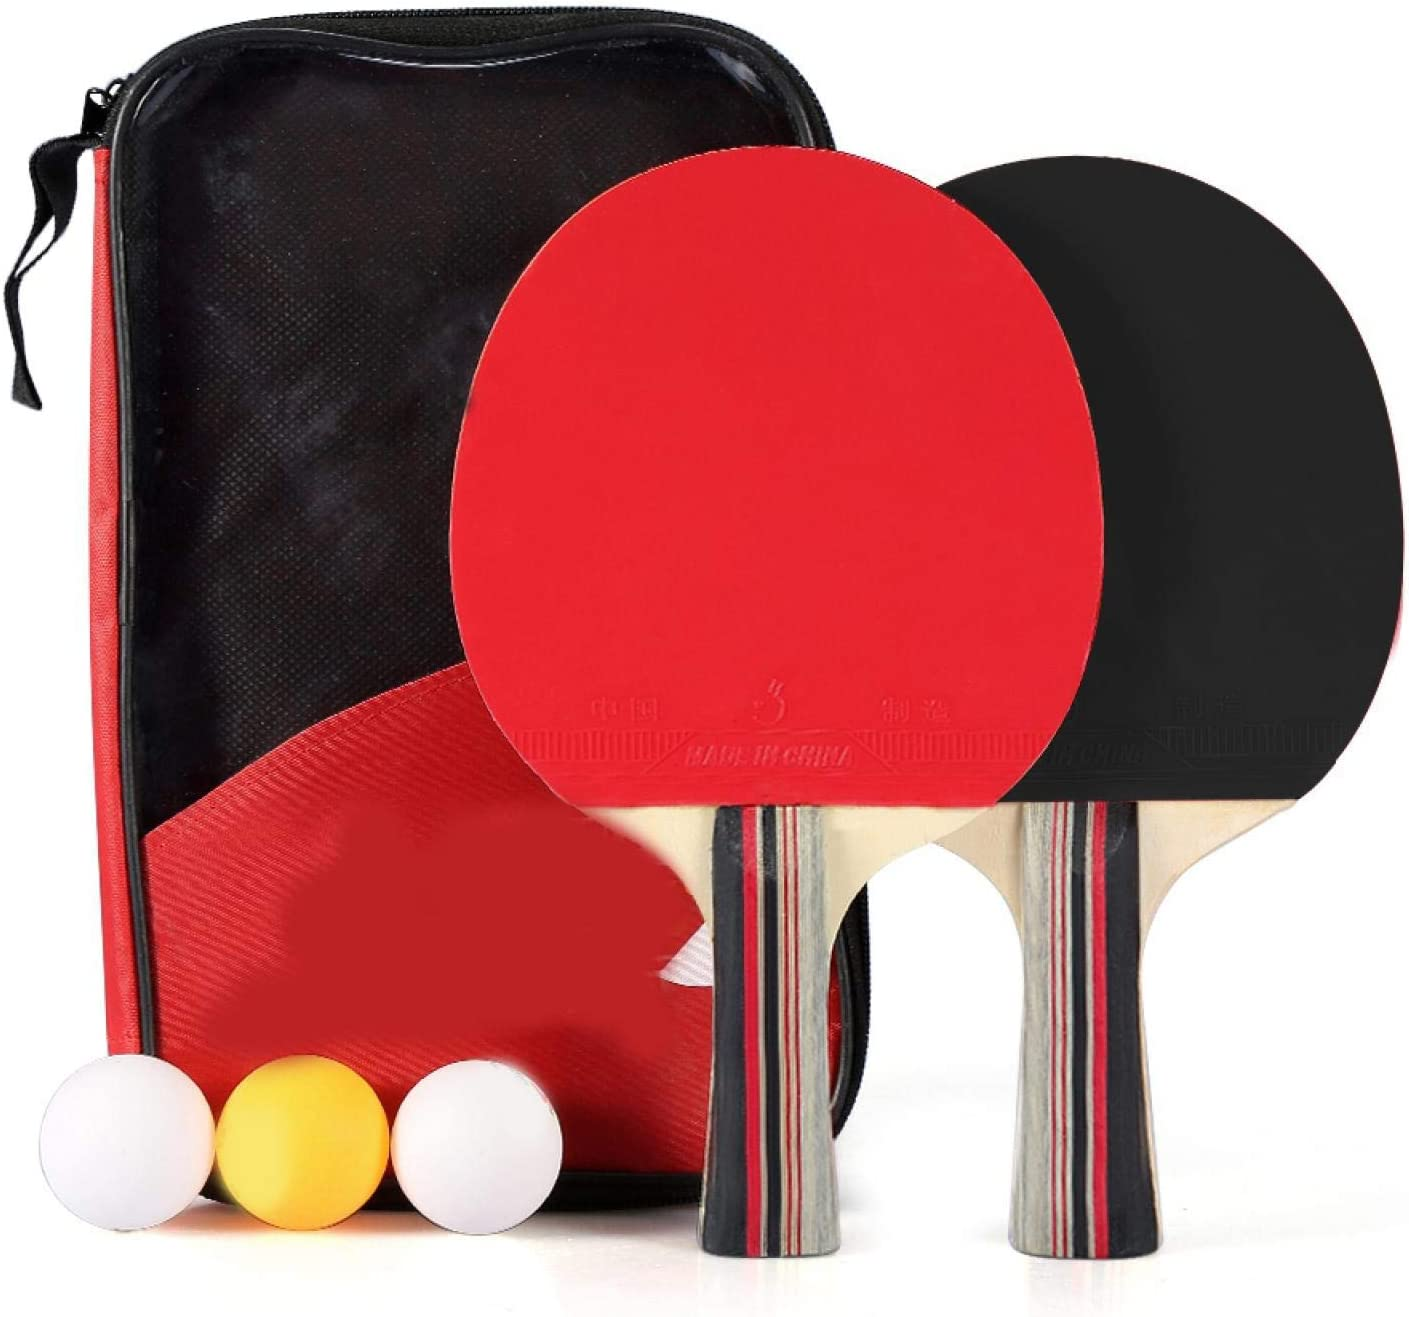 Niiyen Ping Pong Paddle Bat and Table 2021 spring summer Online limited product new Set Tennis 2pc